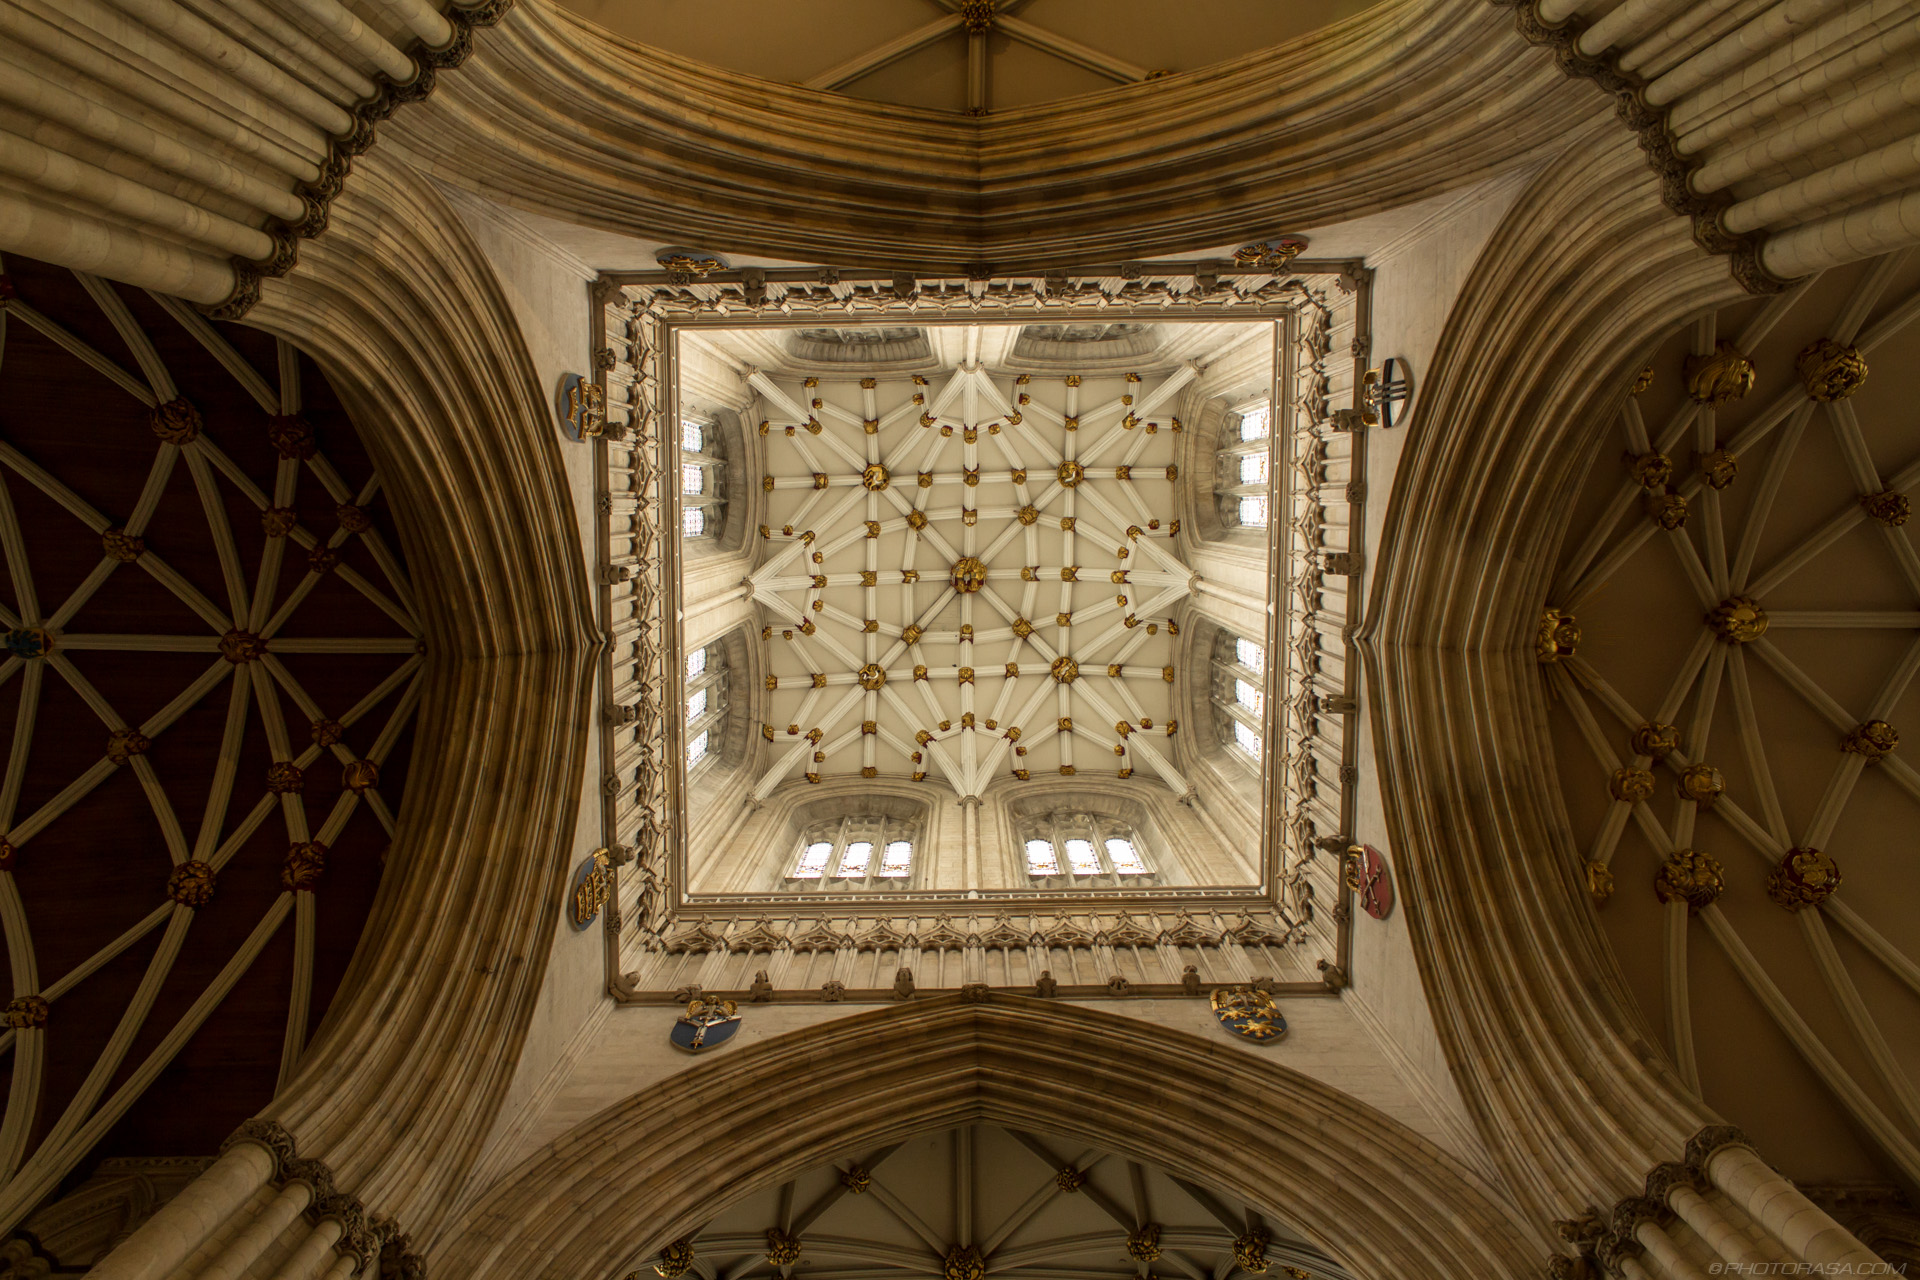 http://photorasa.com/places/yorkminster-cathedral/attachment/central-tower-from-below/